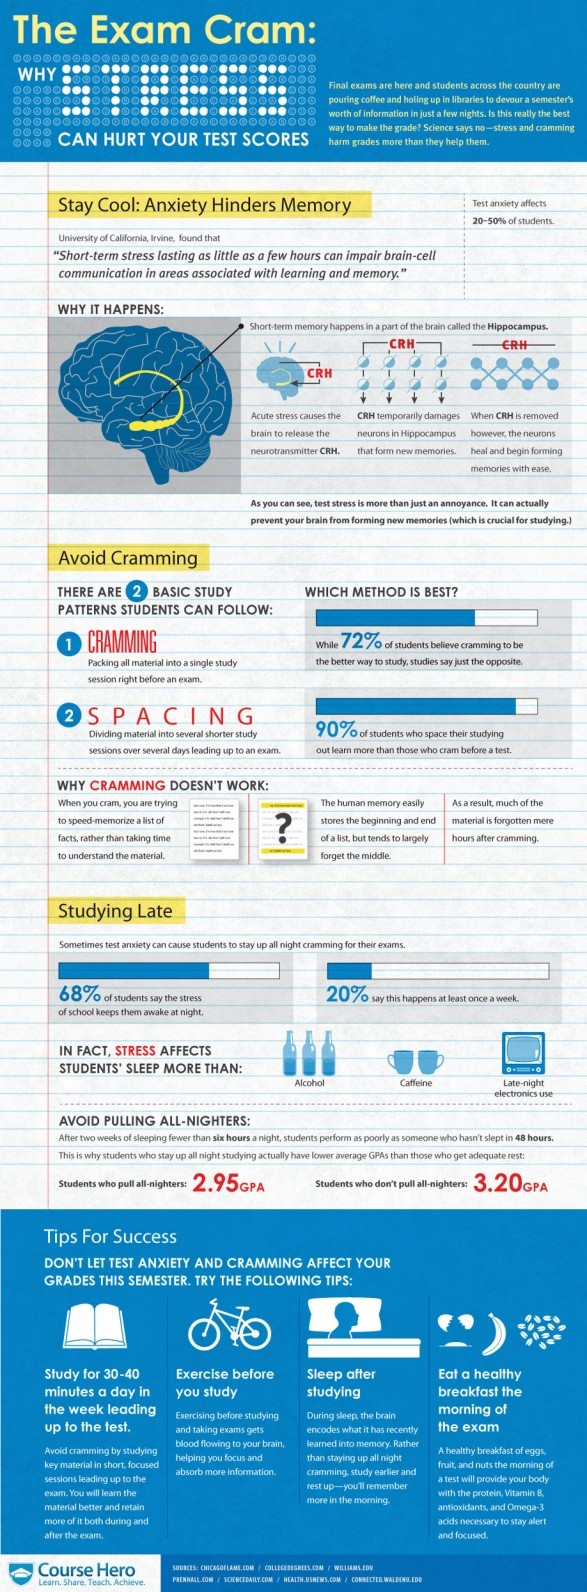 The Exam Cram, I love this infographic as it shows why cramming for tests is not the most efficient way to study even though its growing as a trend.